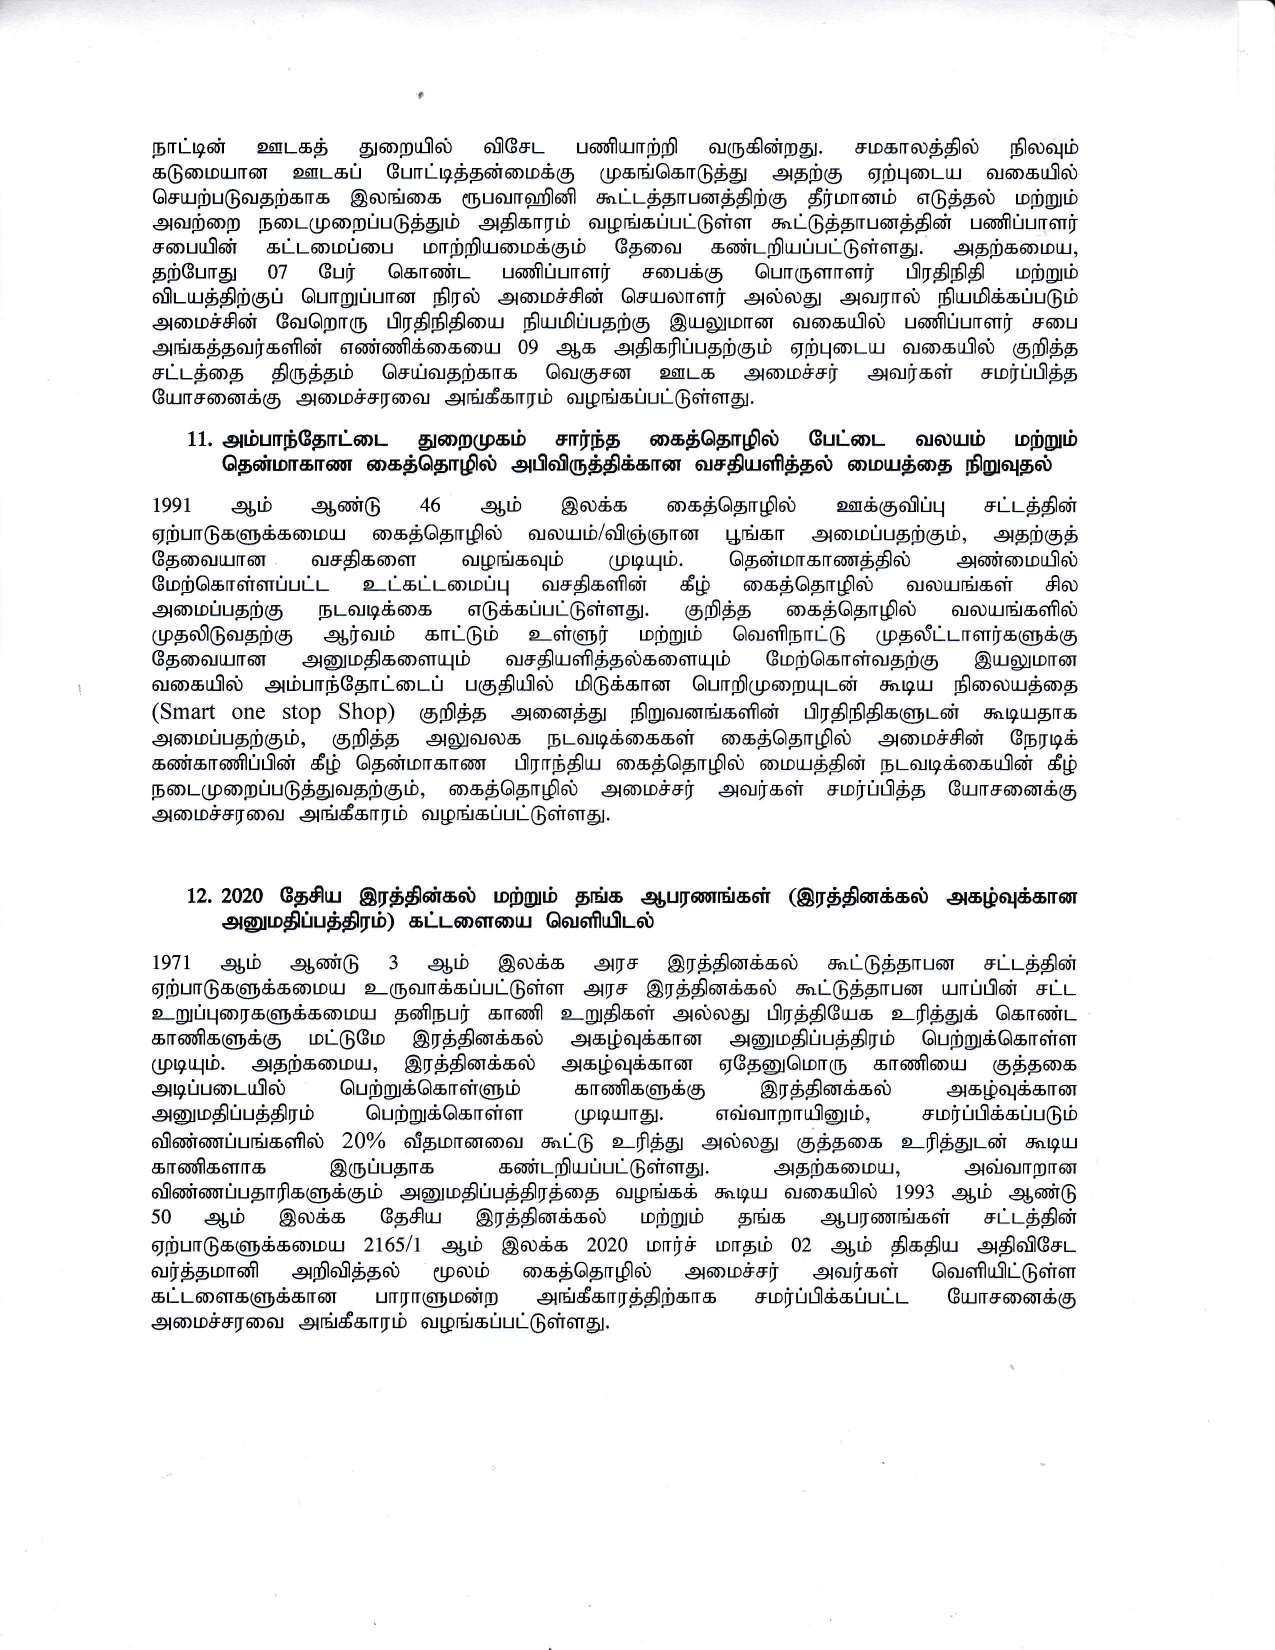 Cabinet Decision on 04.01.2021 Tamil page 004